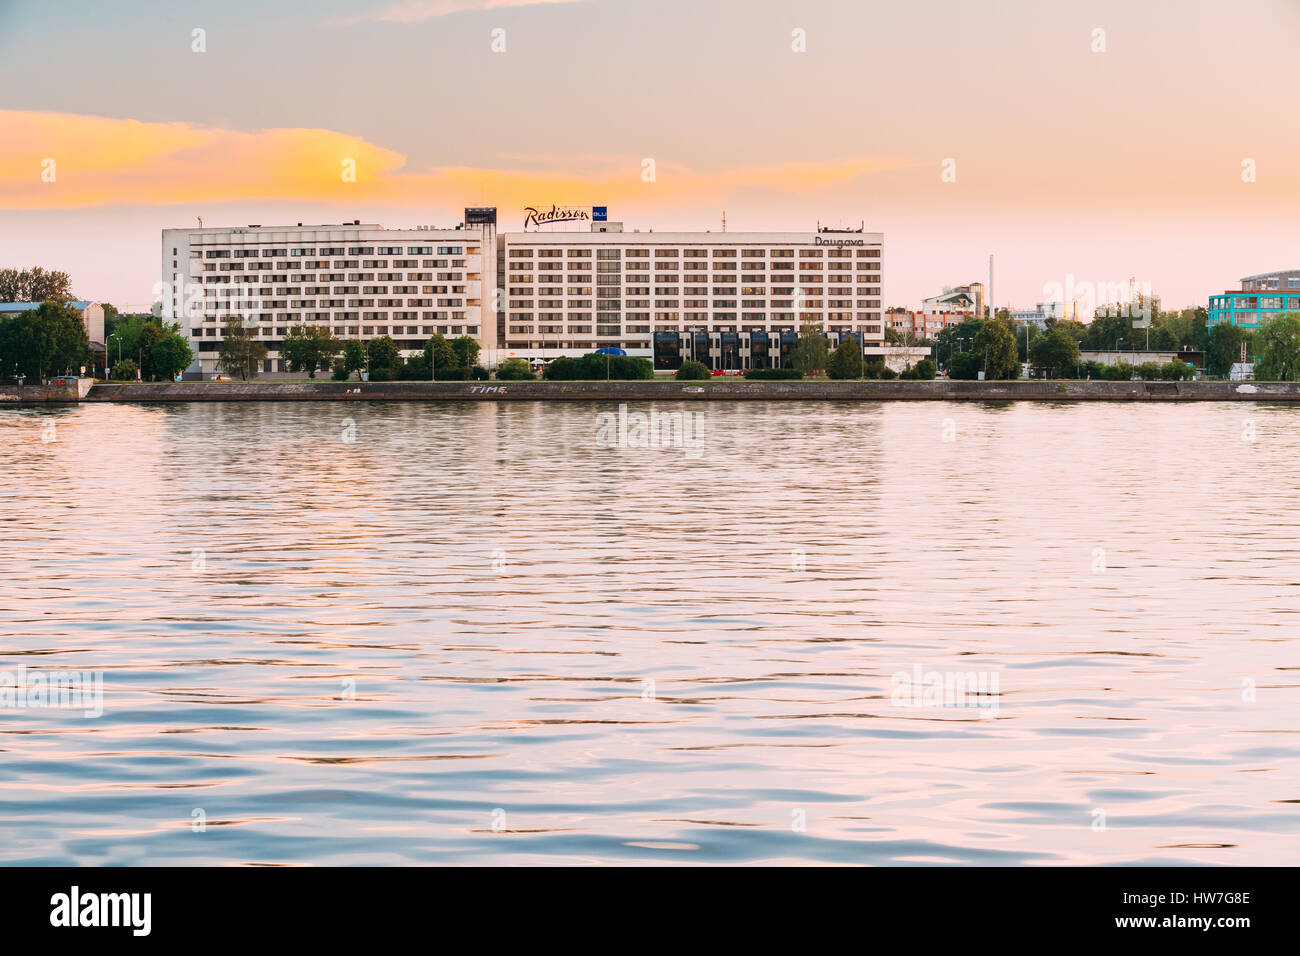 Riga, Latvia - July 1, 2016: Radisson Blu Hotel At Evening Sunset Time At Bank Of Daugava River. - Stock Image